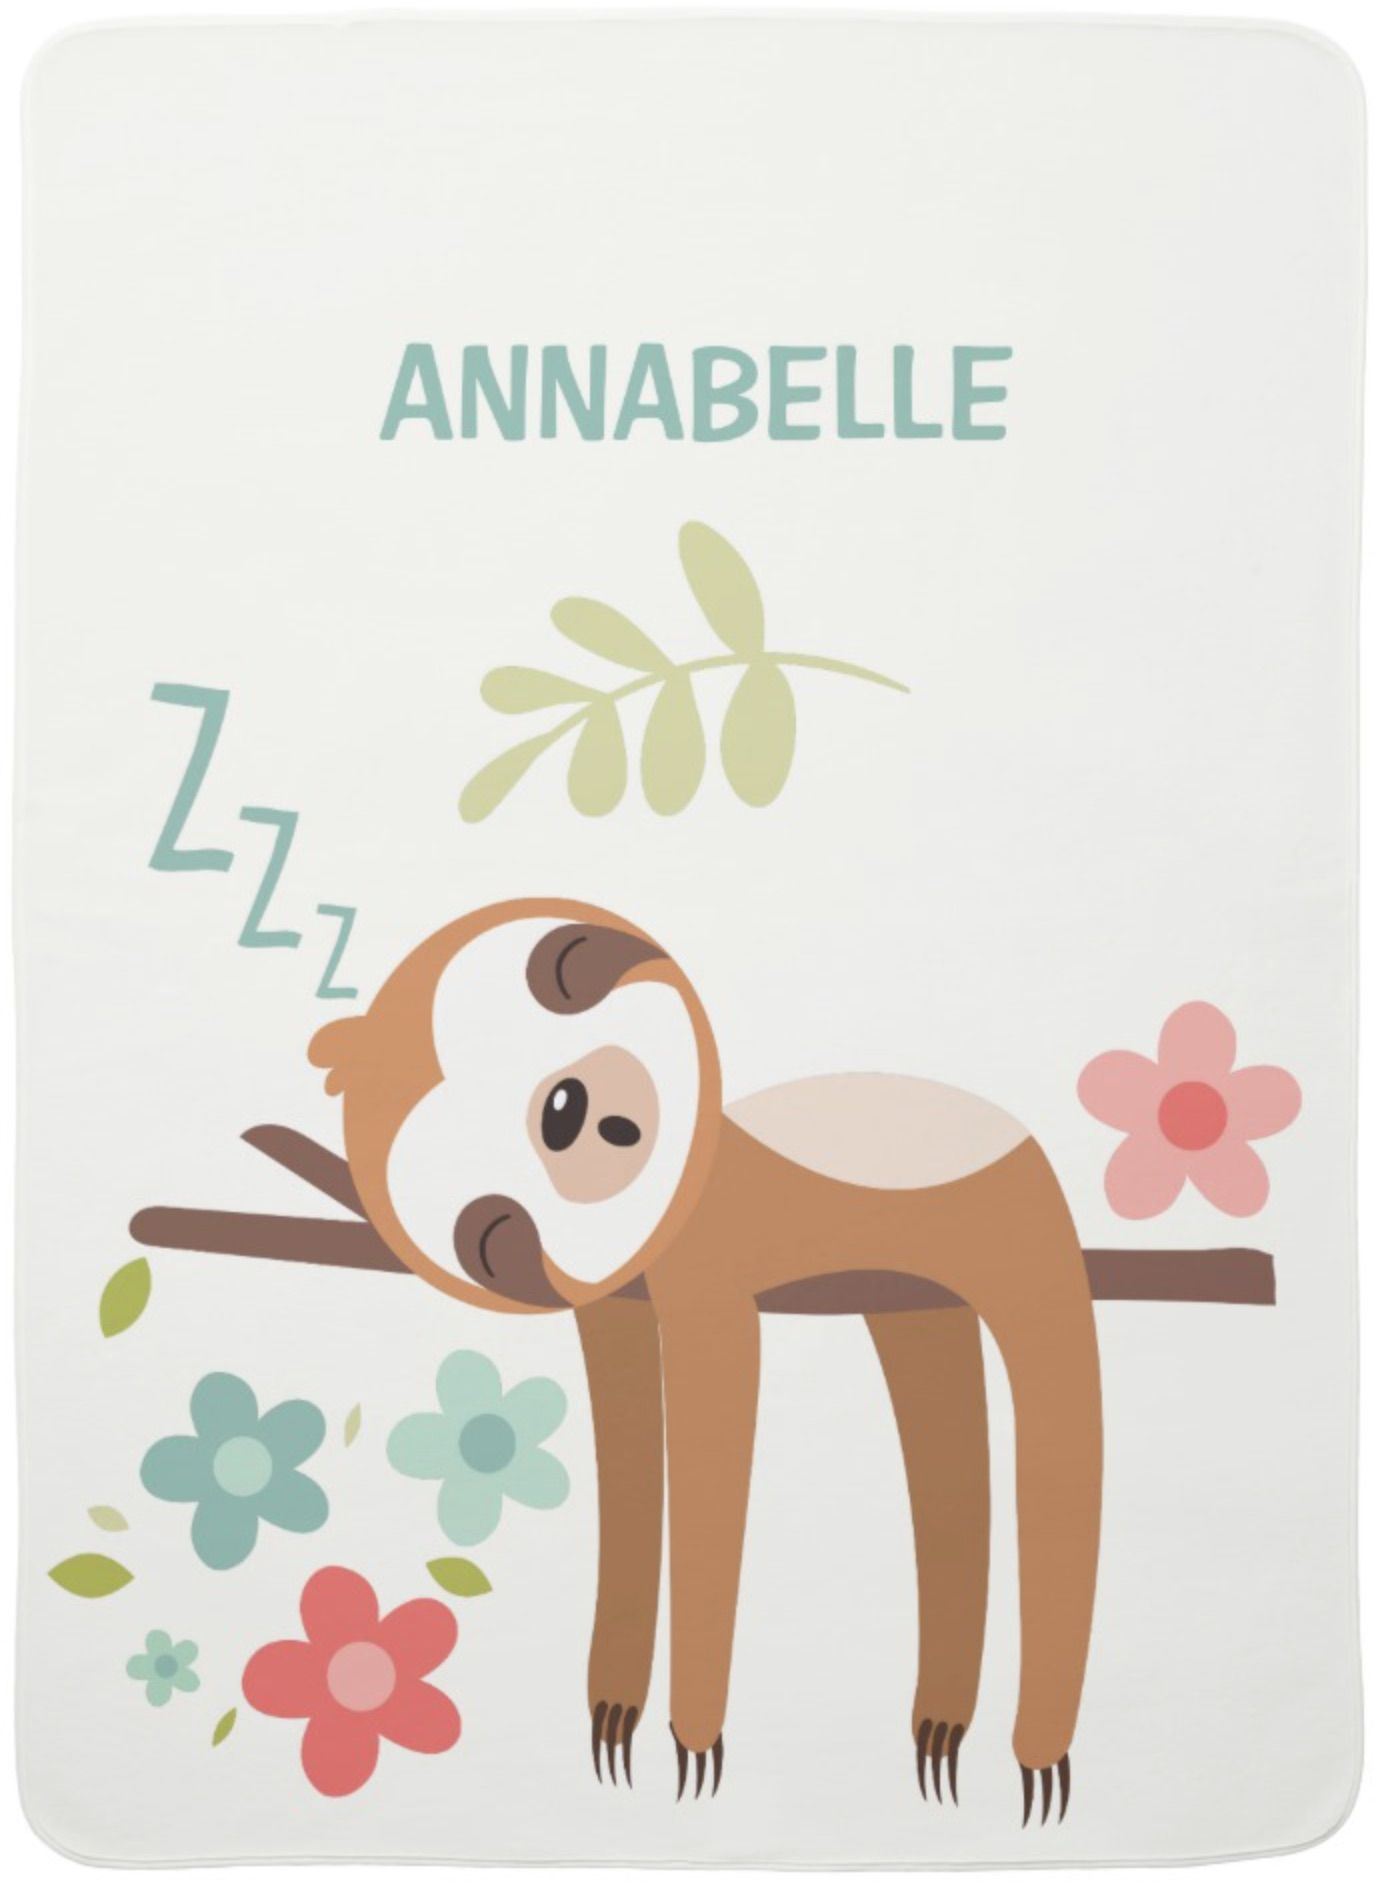 eb8eaf84a Cute Sloth Illustration Swaddle Blanket Animals by JunkyDotCom - An  illustration of a more than cute sloth lazy hanging in a tree